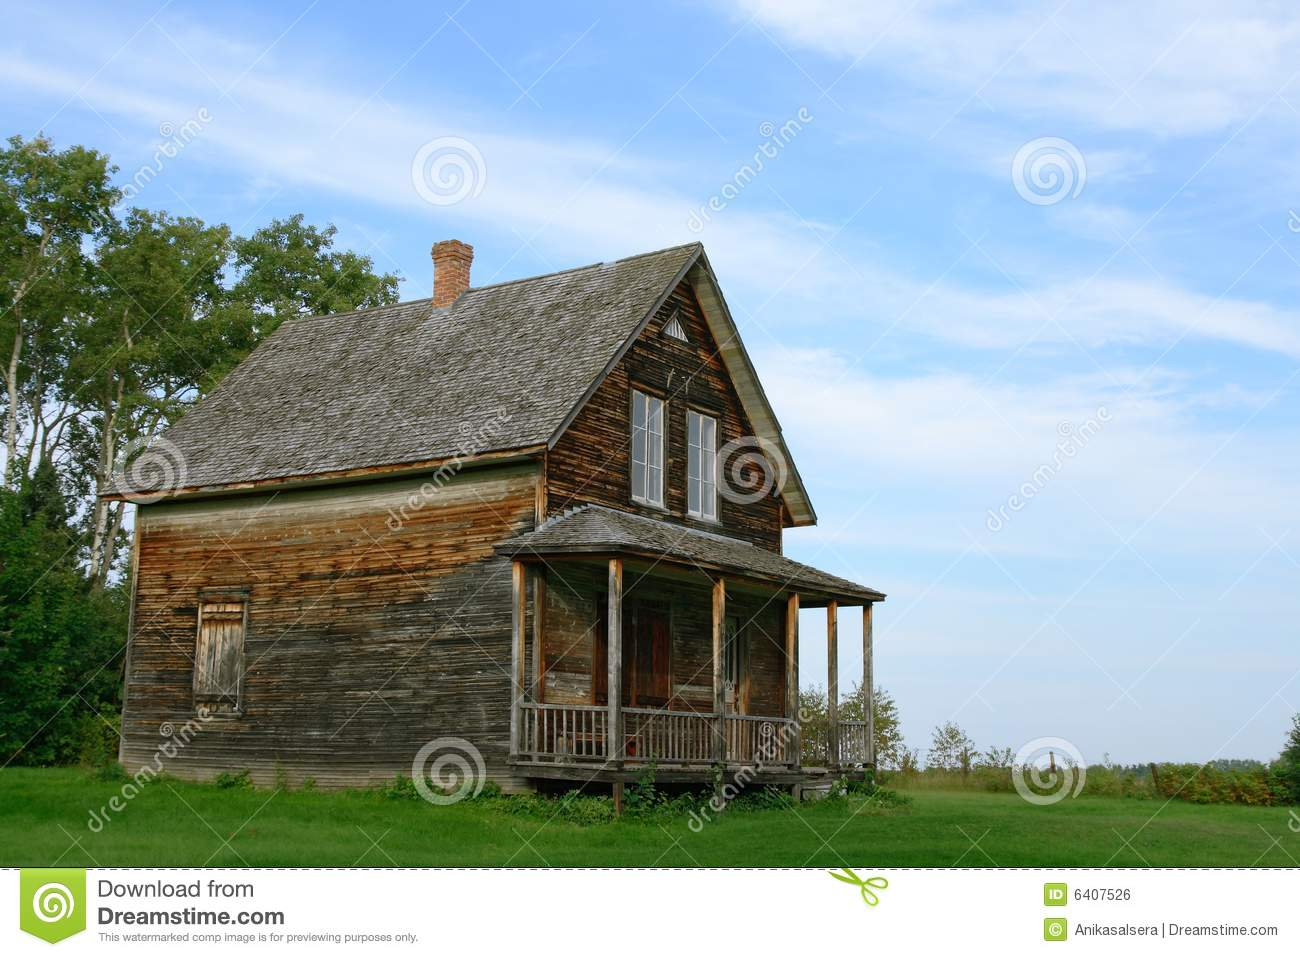 wooden country house design photo - 10